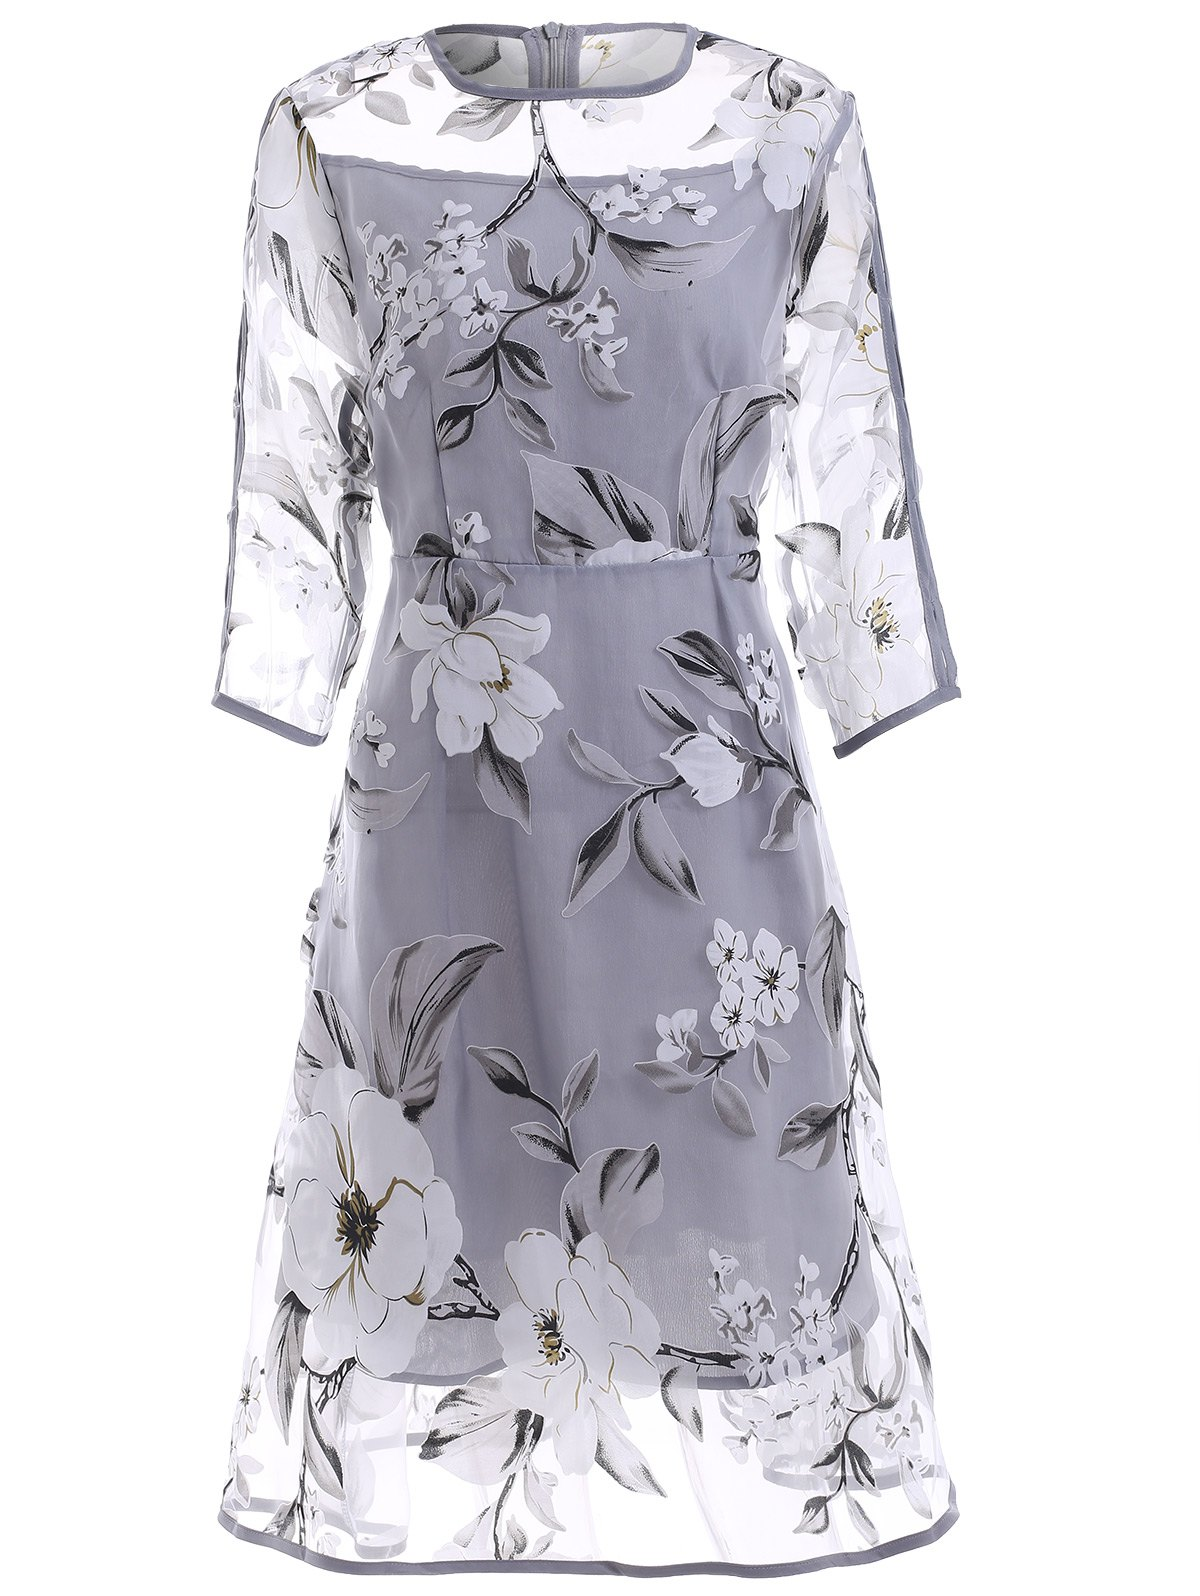 Sweet 3/4 Sleeve See-Through Floral Organza Dress For Women